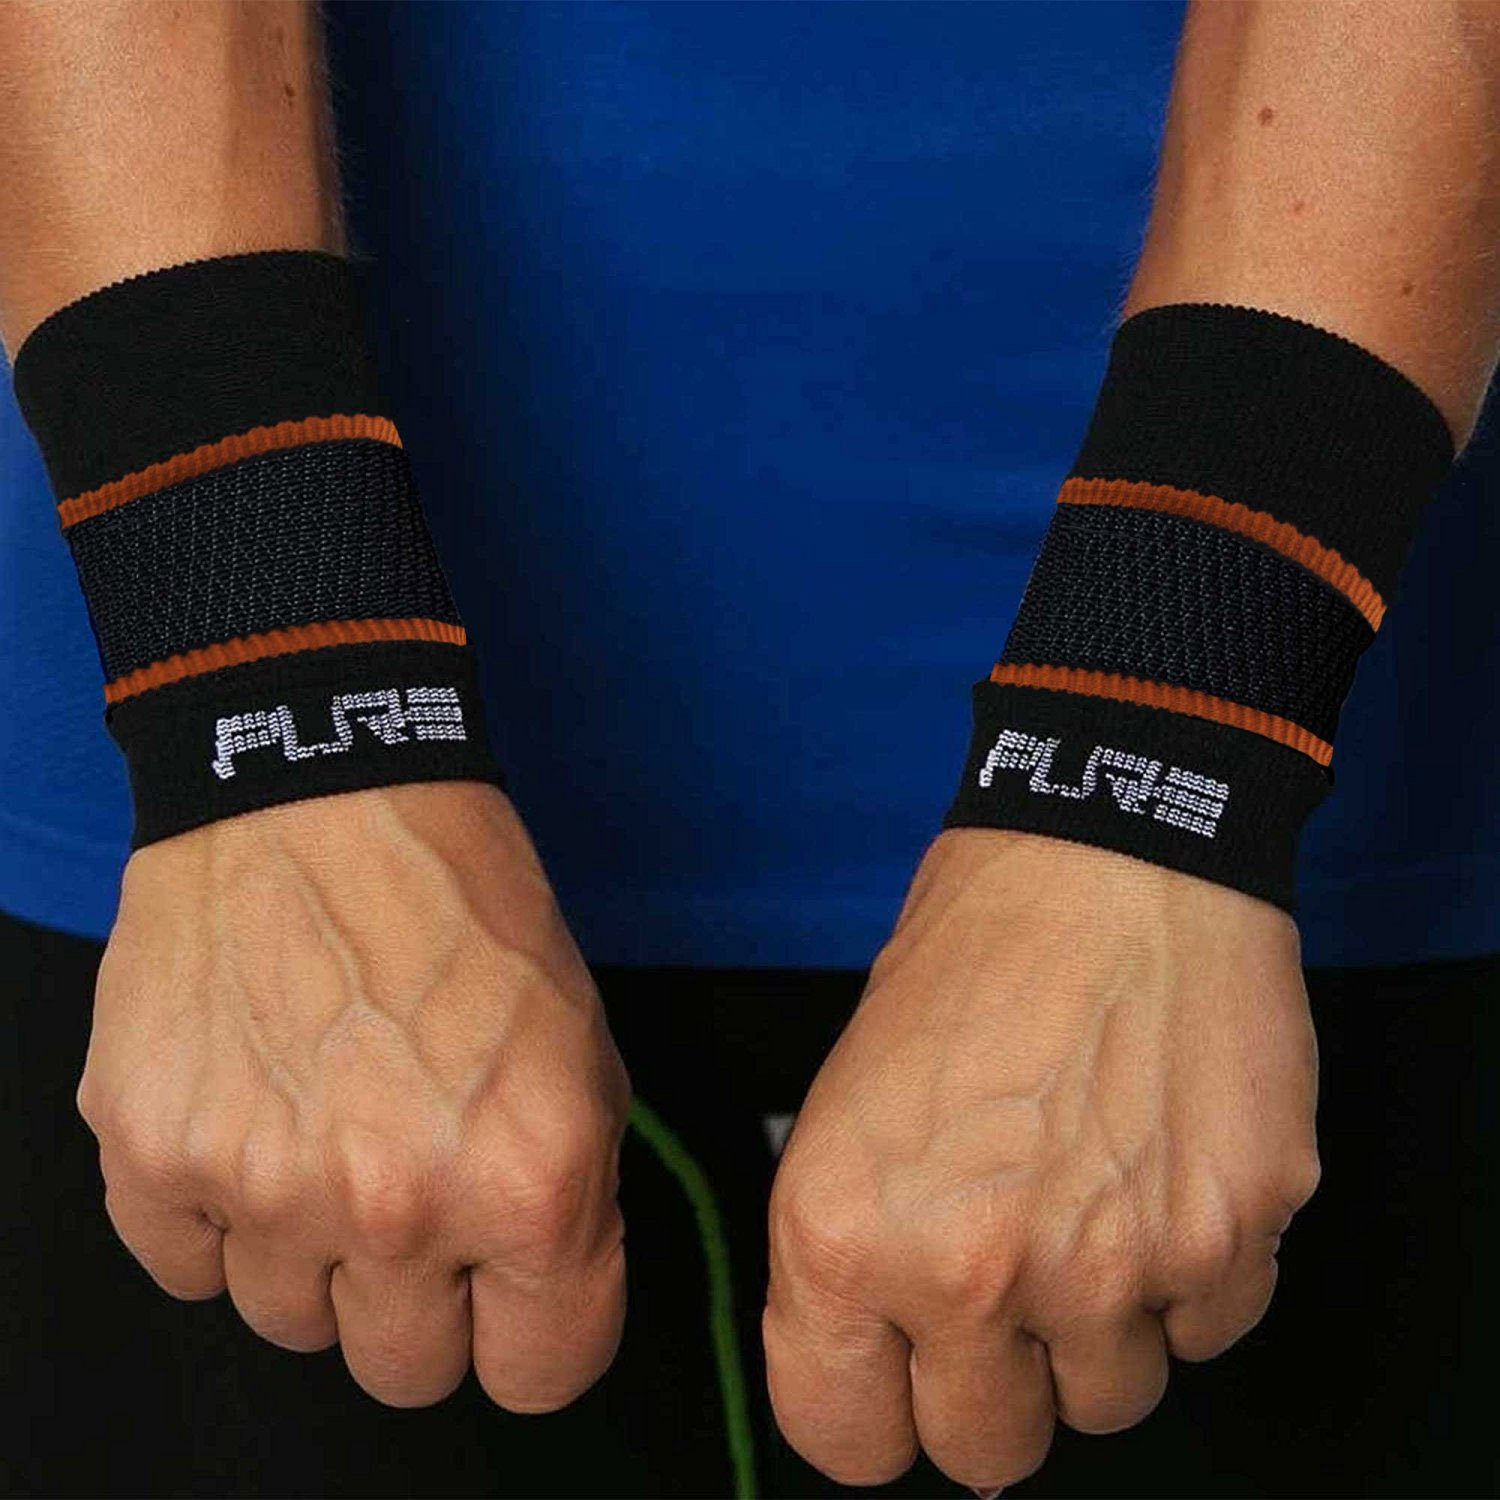 Pure Compression Copper Wrist Support - Best Wrist Sleeve Carpal Tunnel, Relieve Wrist Pain (Large, Black-Copper)